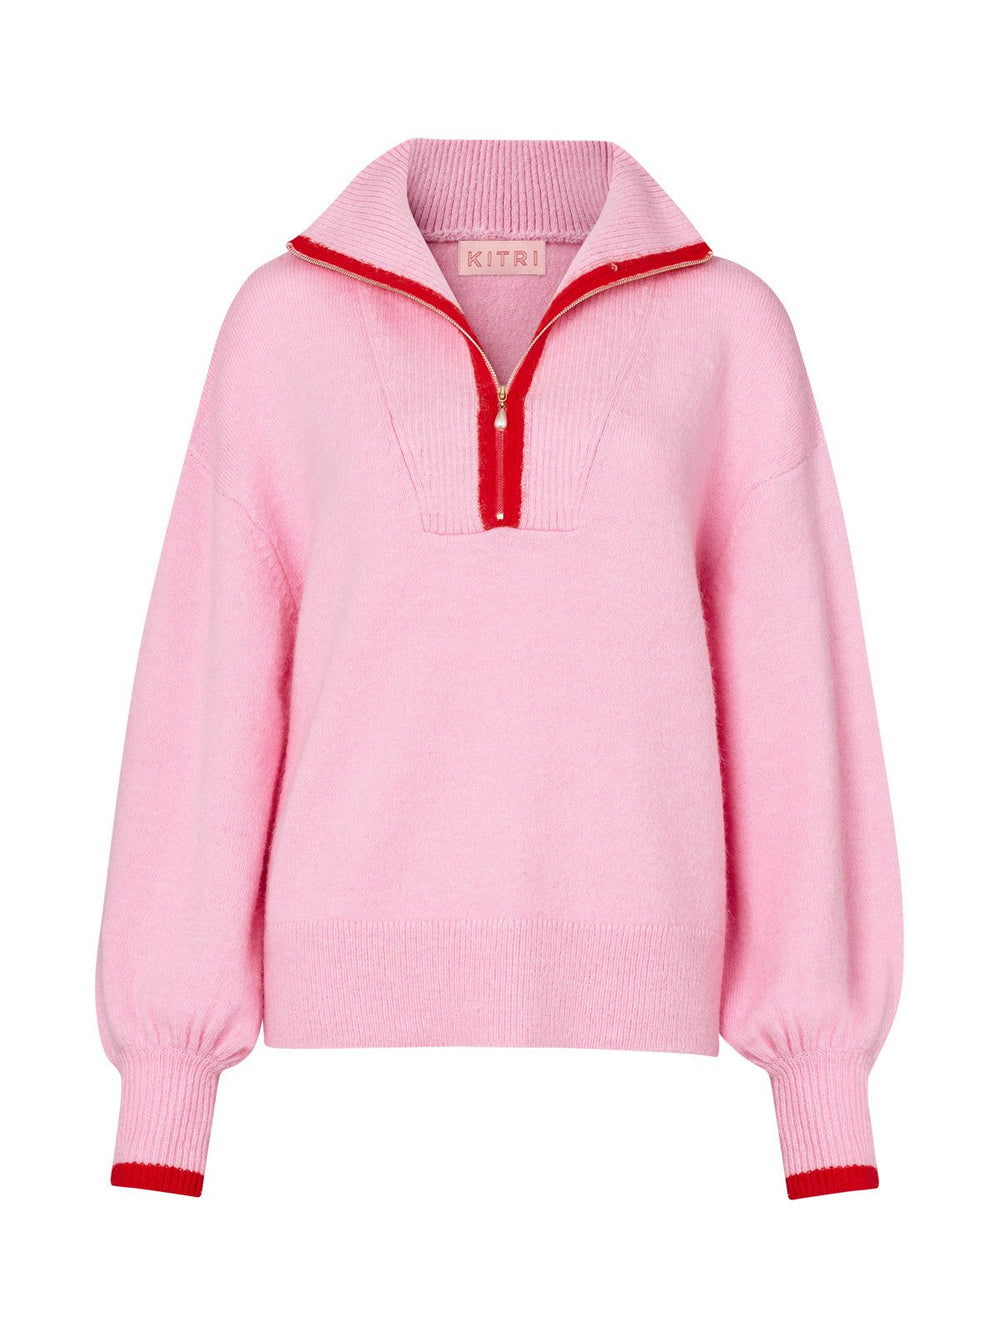 Lorna Pink Alpaca Blend Zip Collar Sweater